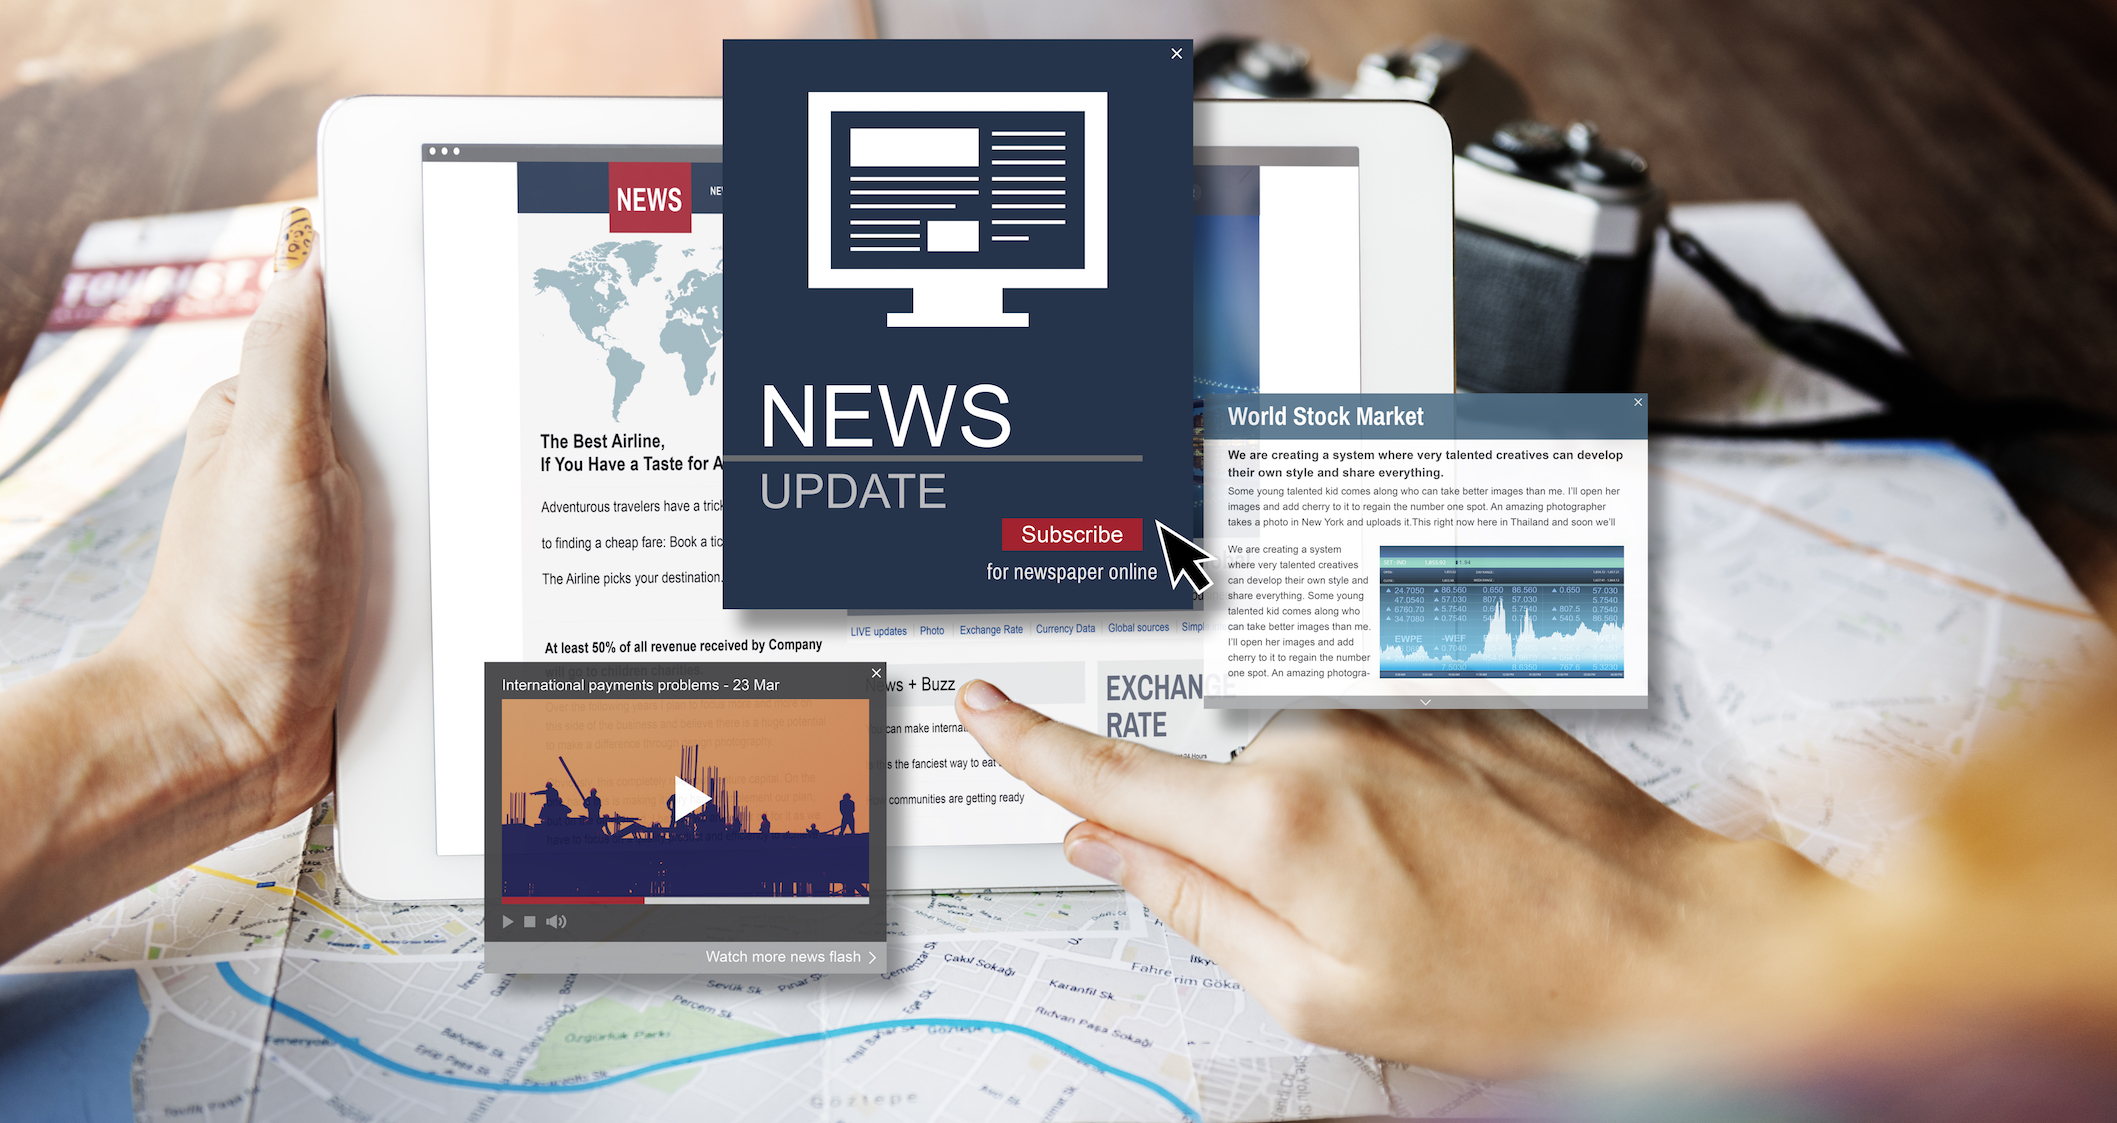 """When we're constantly """"plugged in,"""" we have access to breaking news stories 24/7, and now research shows that all the negative news coverage is negatively affecting our health."""